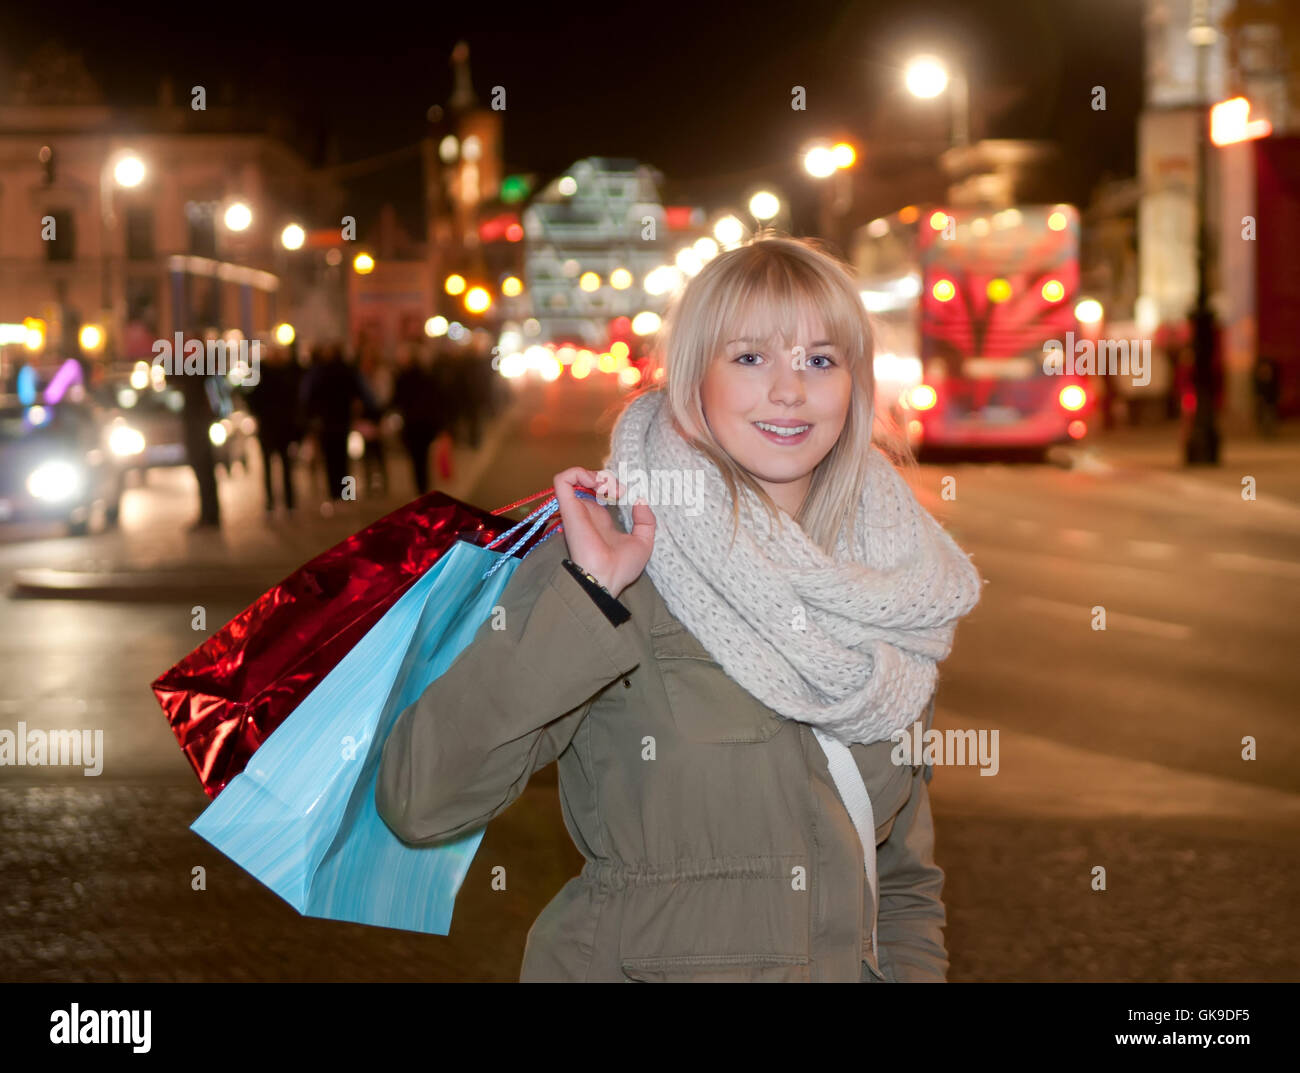 young woman while shopping in the evening grossstadt - Stock Image